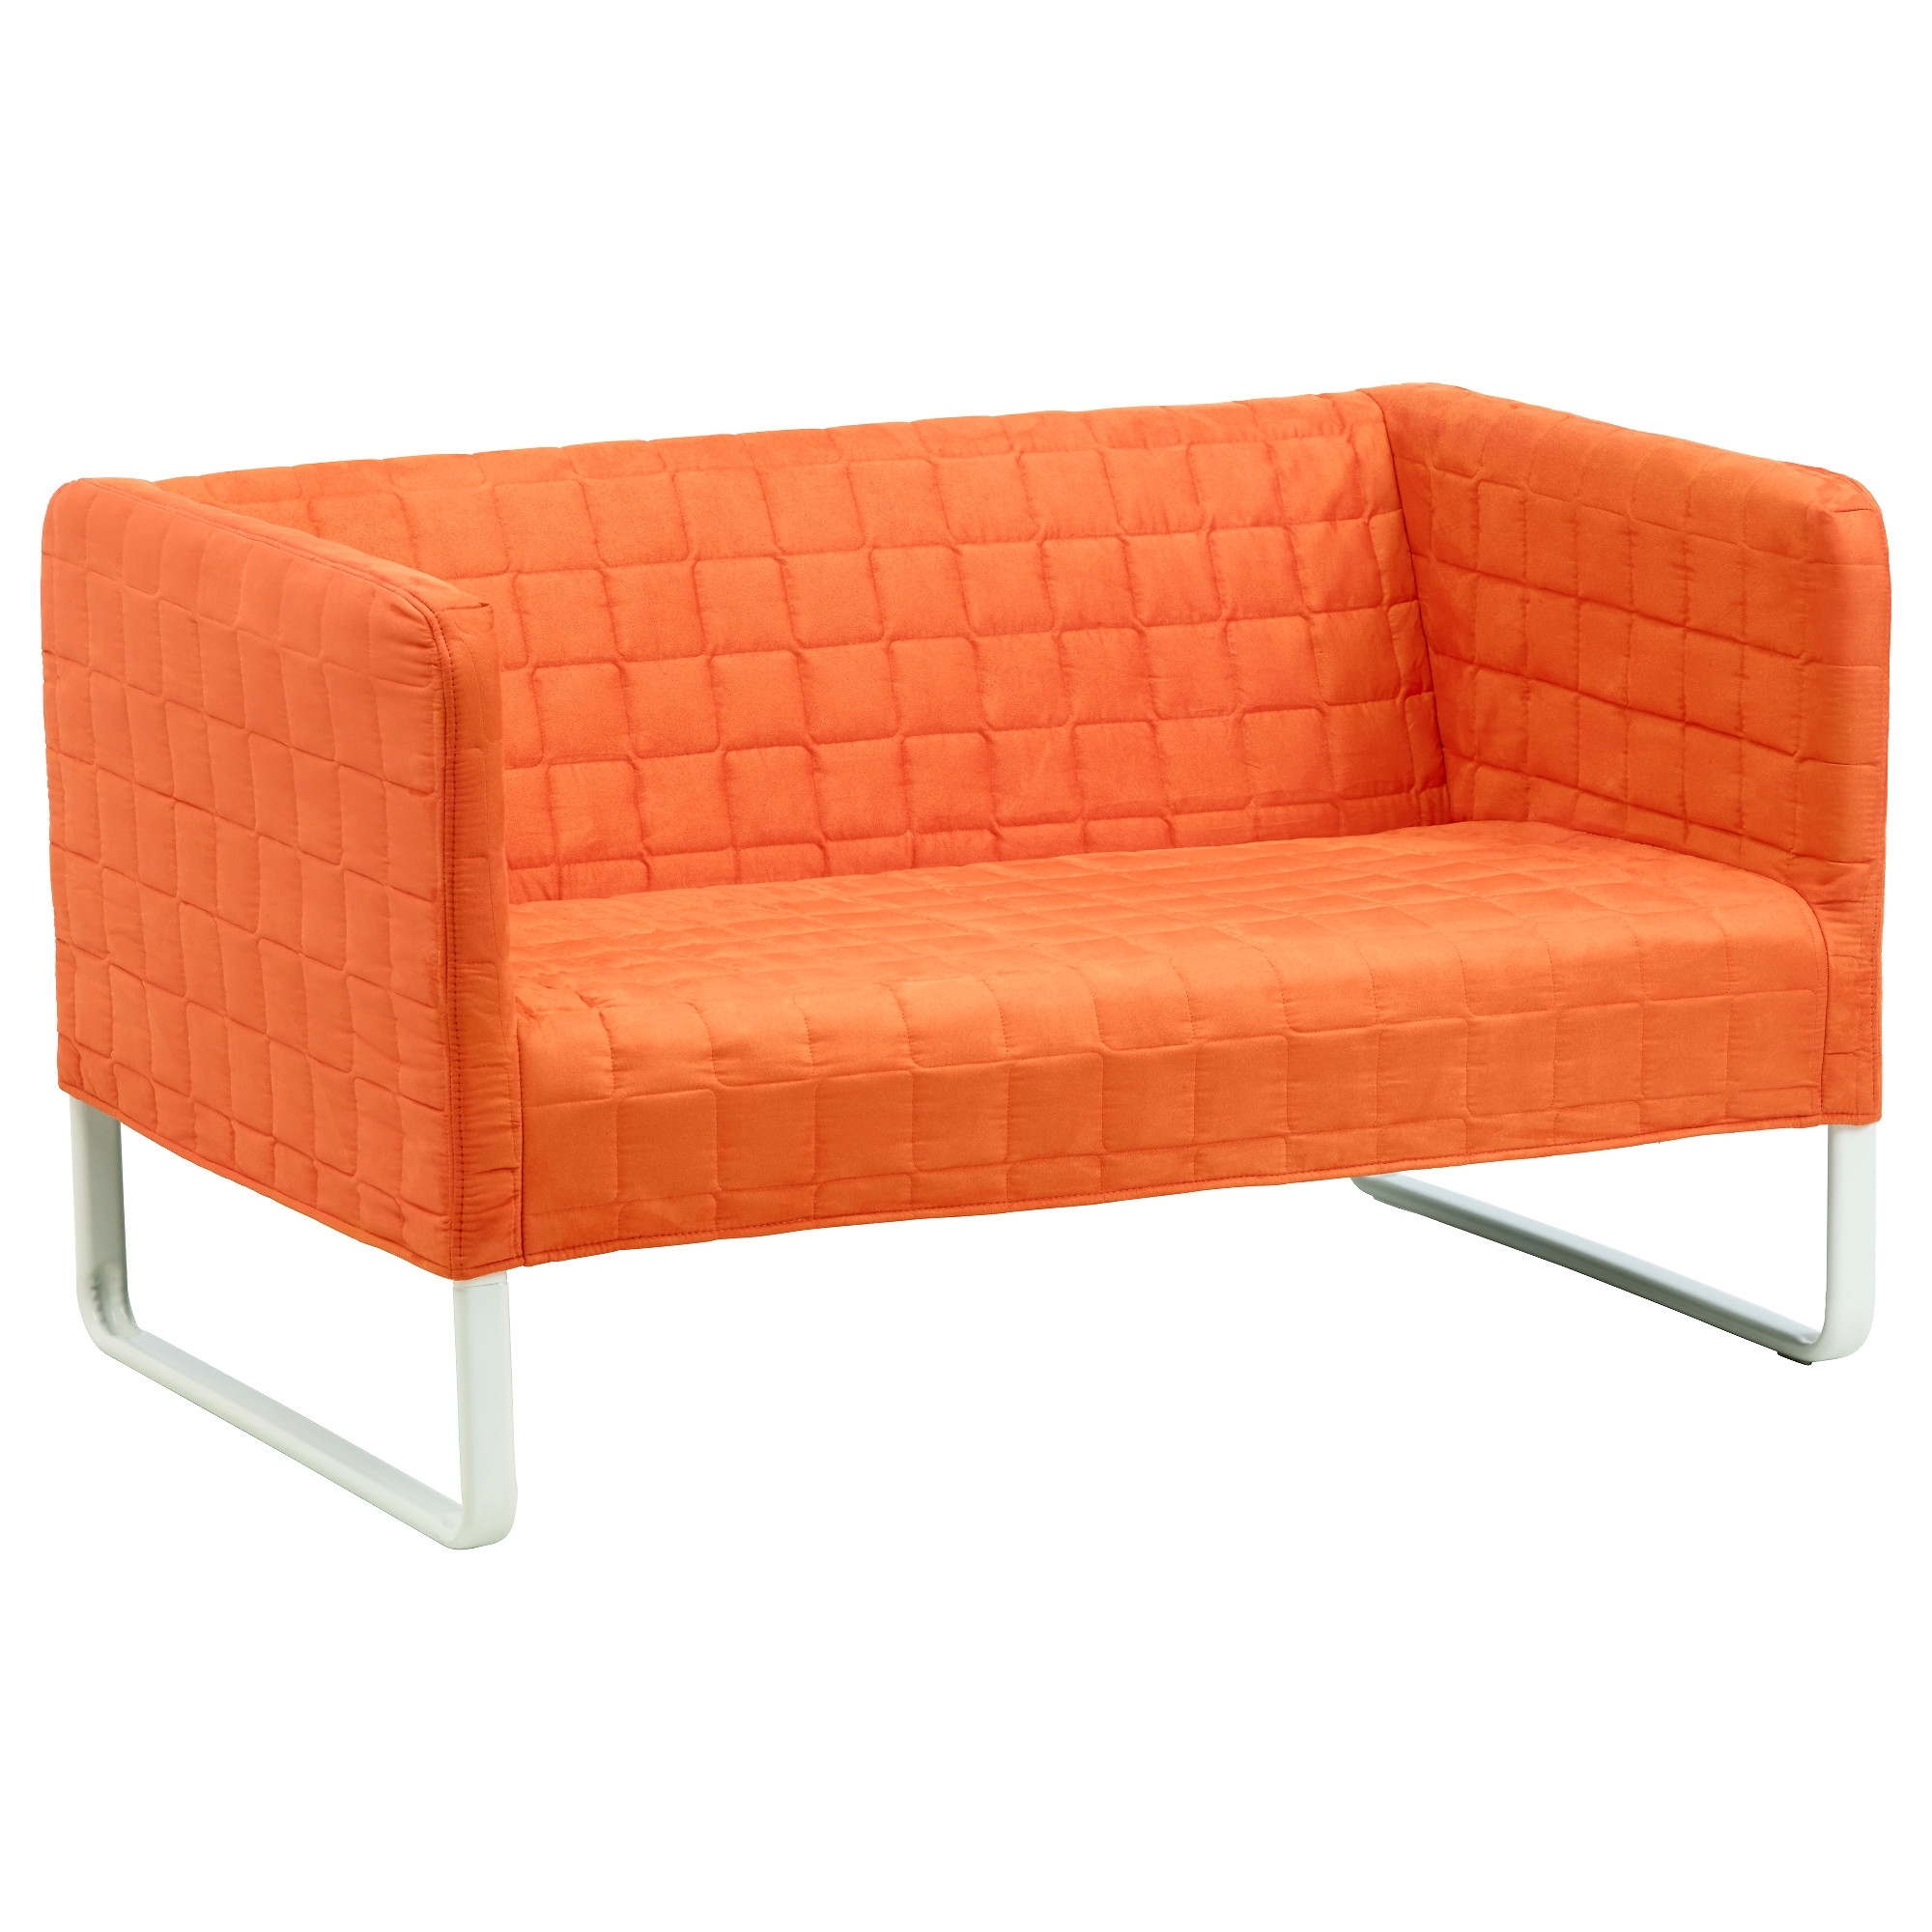 Knopparp 2 Seat Sofa Orange – Ikea In Current Small 2 Seater Sofas (View 12 of 20)